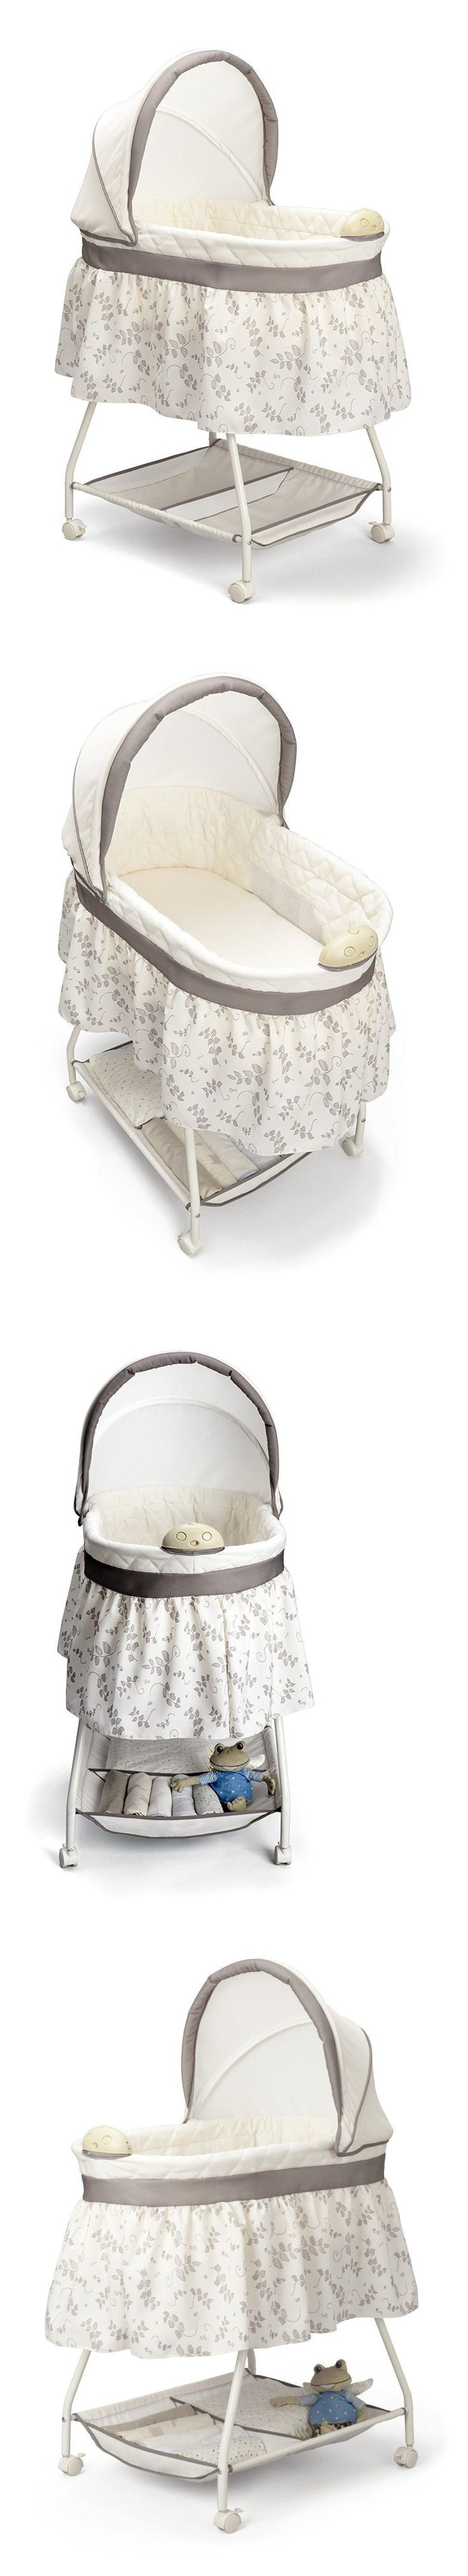 Used crib for sale ebay - Baby Nursery Baby Bassinet Portable Rocking Music Nursery Crib Cradle Sleeper Buy It